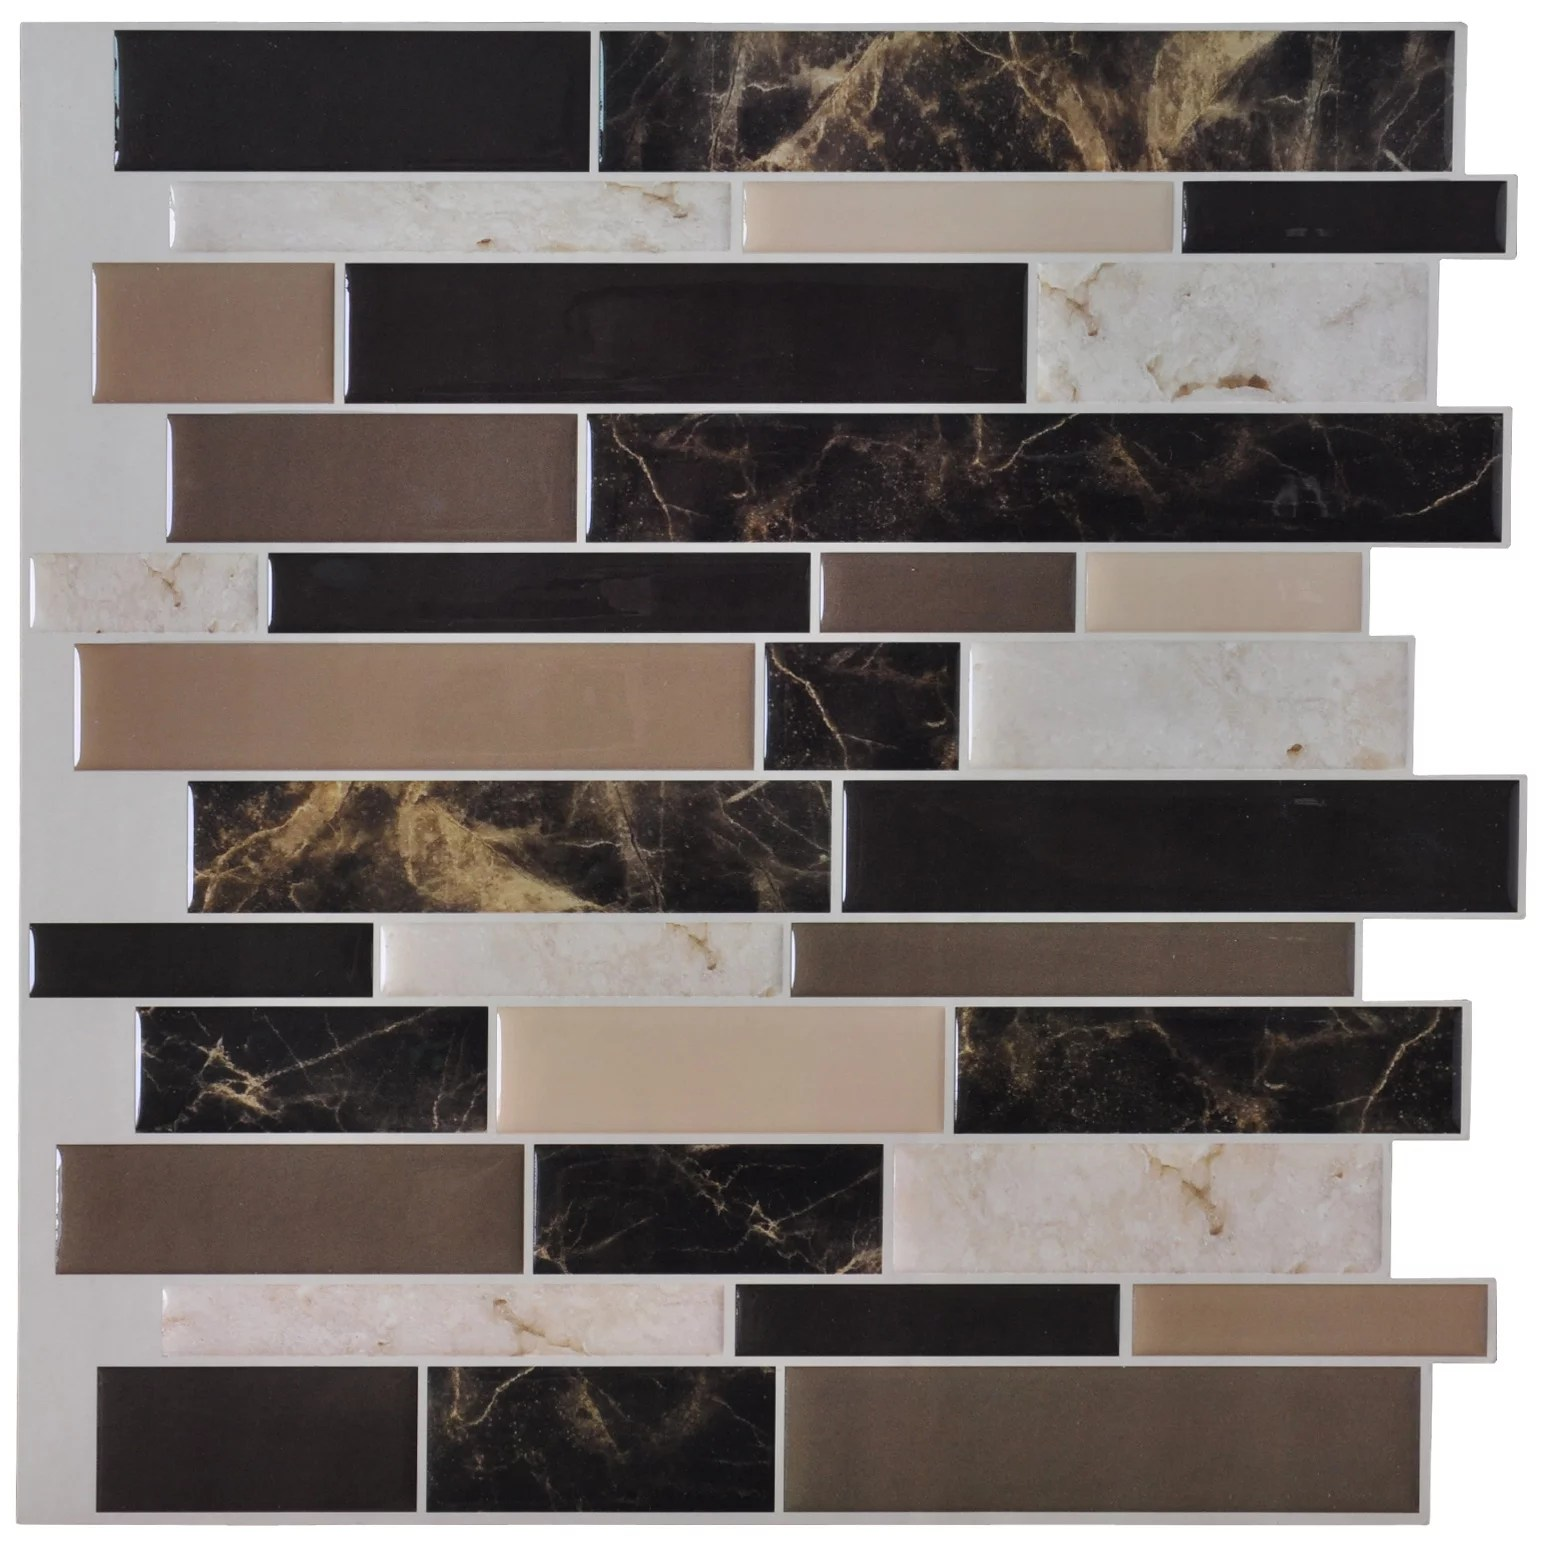 stick on backsplash tiles for kitchen natural maple cabinets self adhesive wall tile peel and 12 x12 6 sheets walmart com